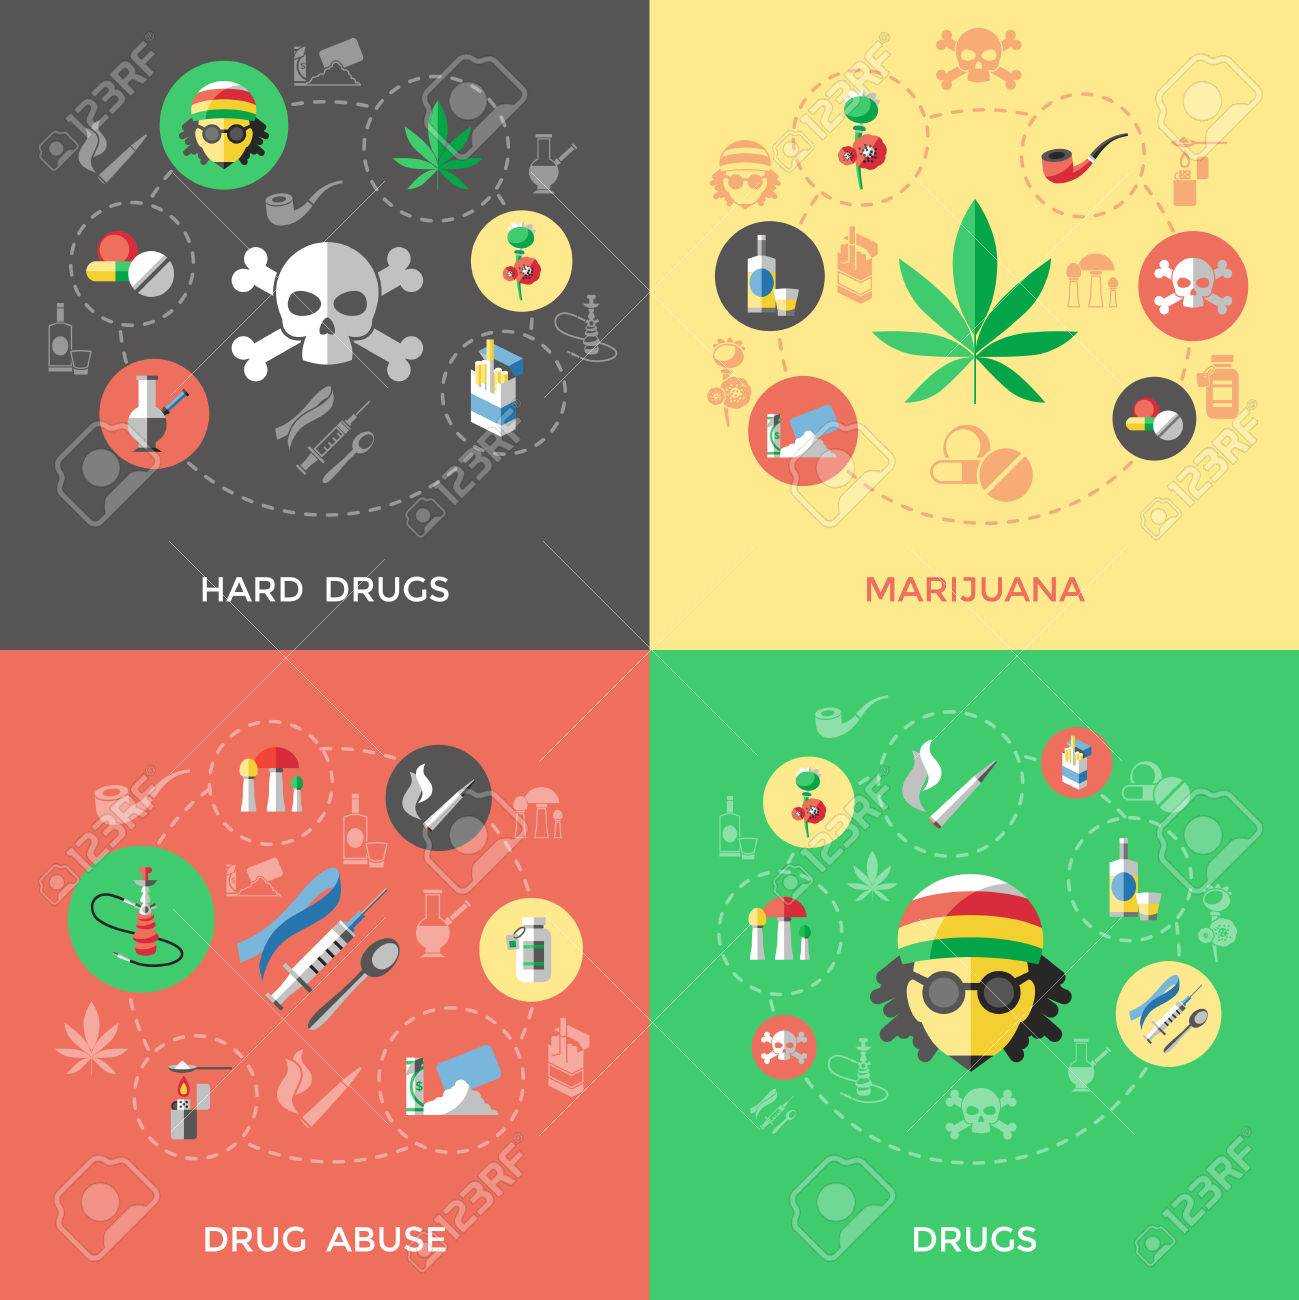 flat drugs icon set with descriptions of hard drugs marijuana royalty free cliparts vectors and stock illustration image 59664826 flat drugs icon set with descriptions of hard drugs marijuana